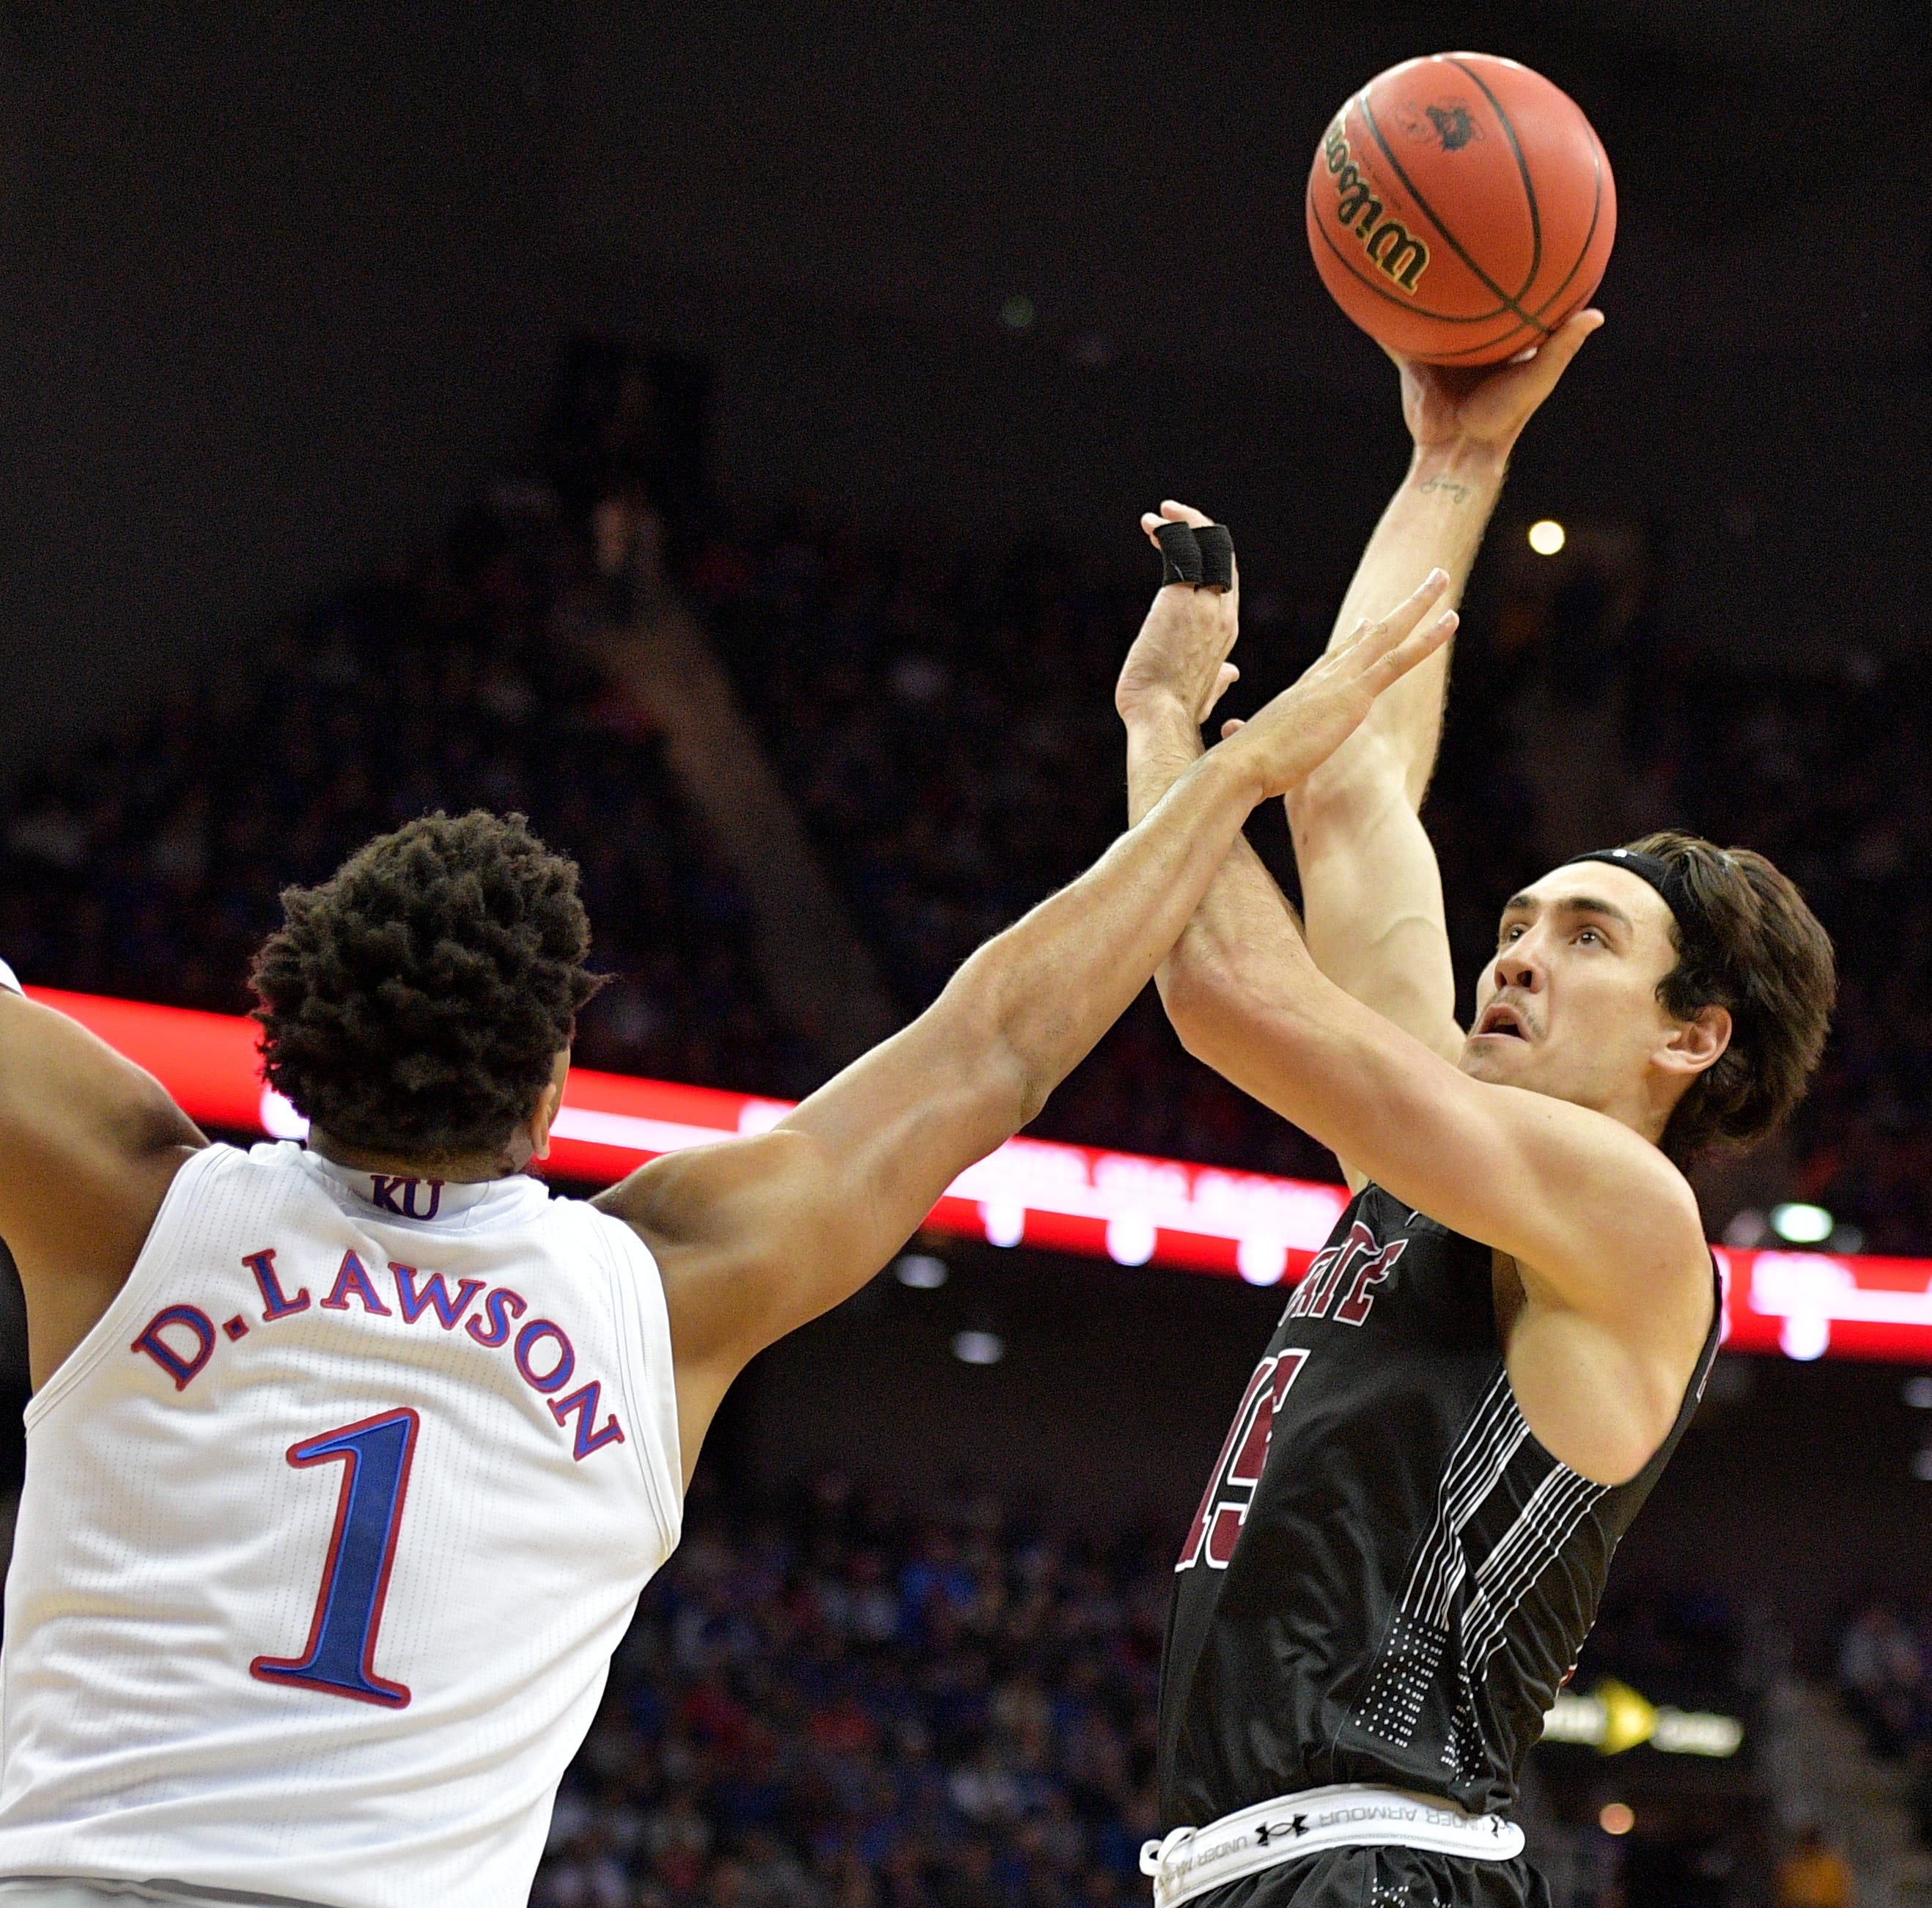 New Mexico State's  Ivan Aurrecoechea named WAC Player of the Week